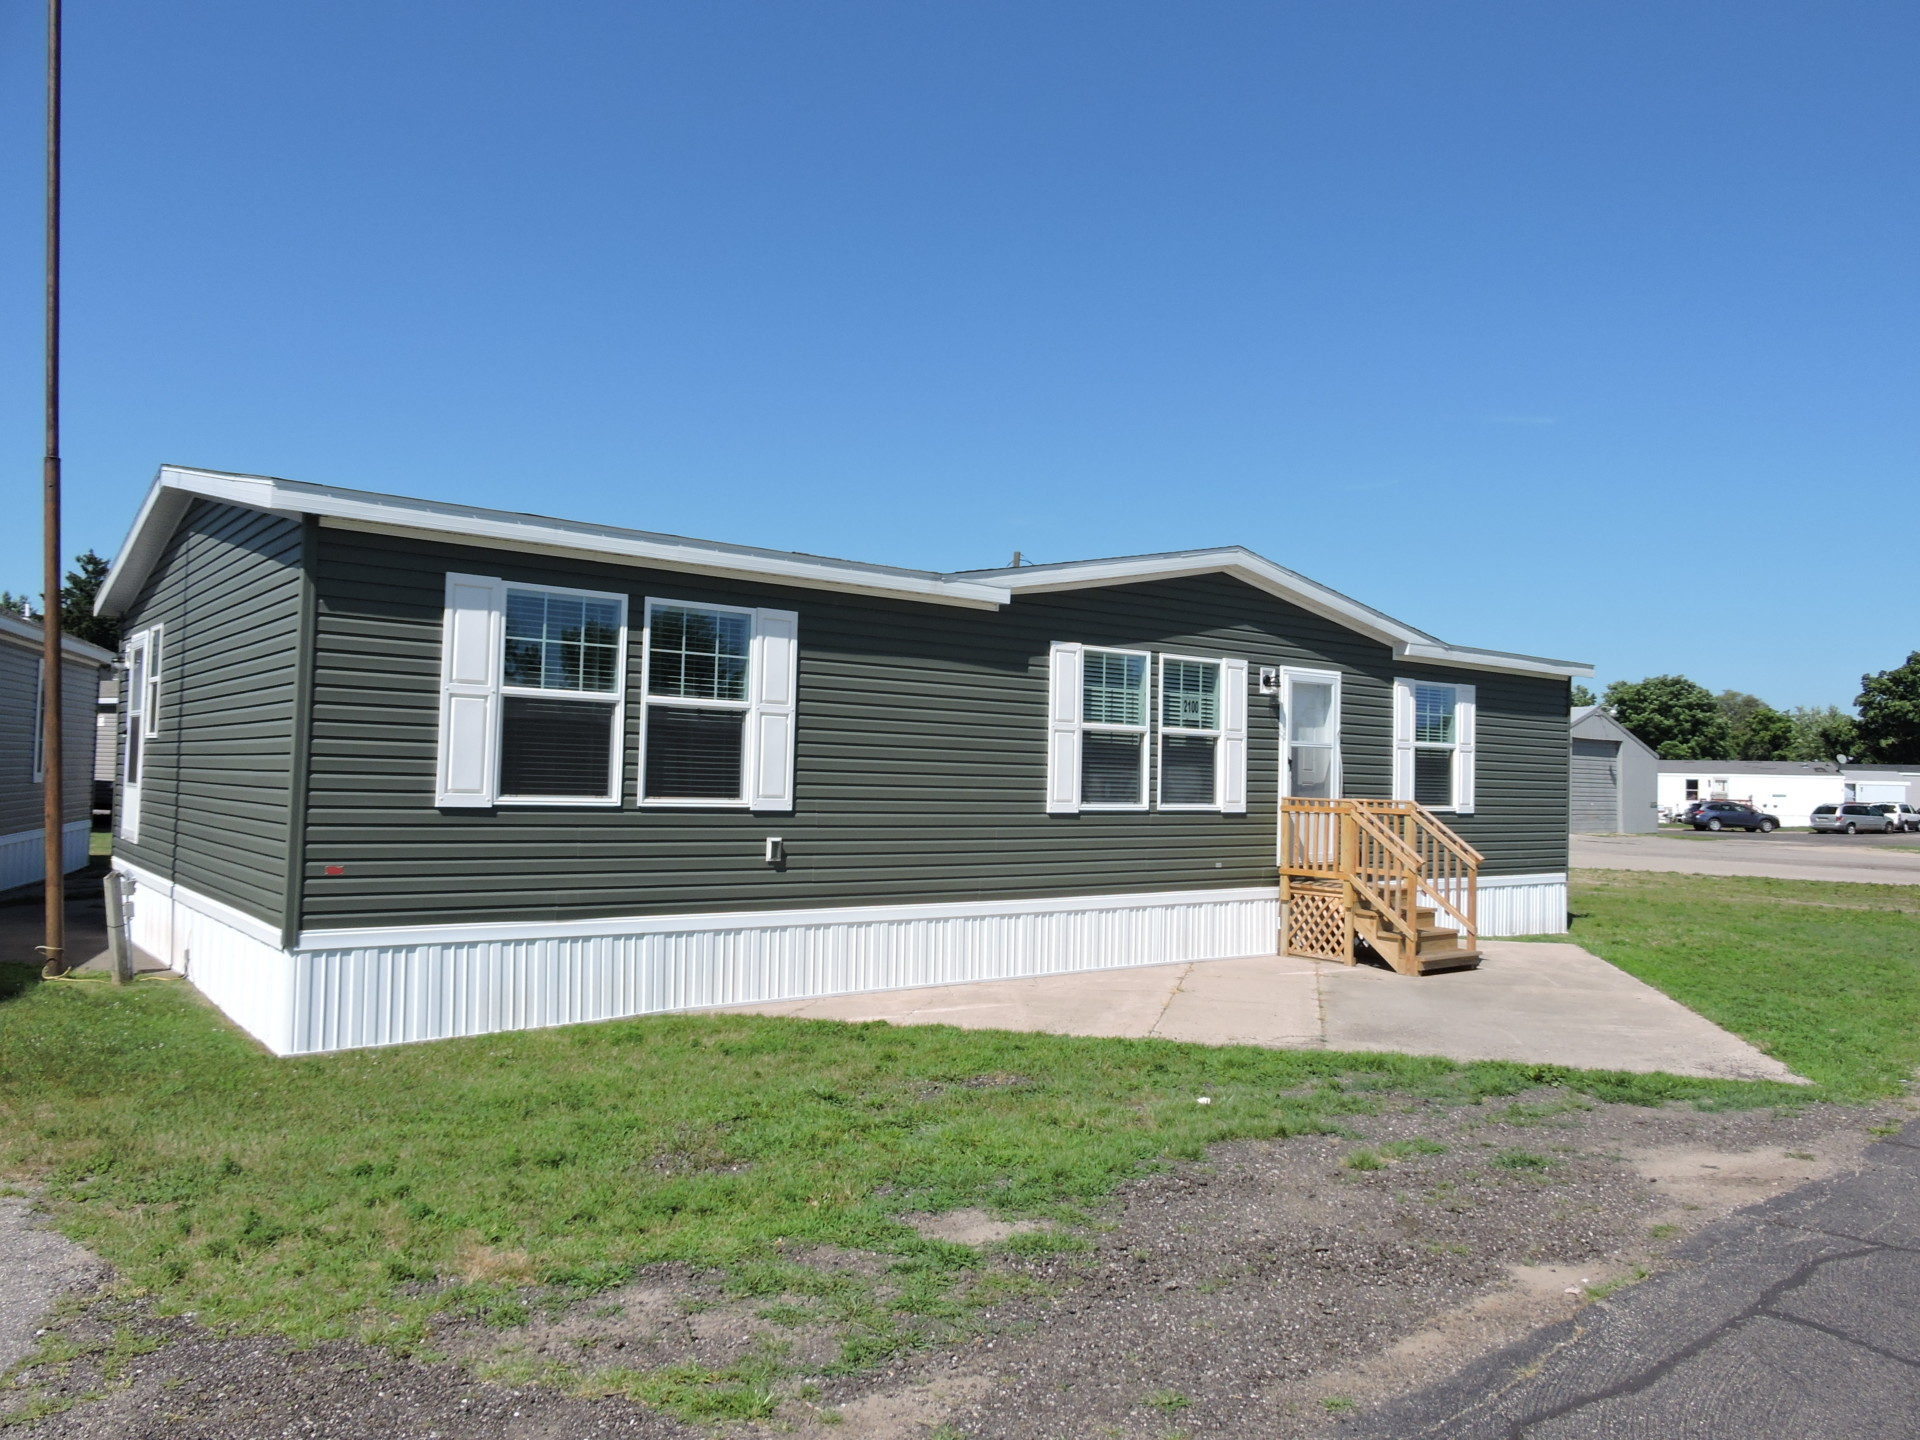 Double Wide Manufactured Homes for Sale in Grand Rapids, Michigan